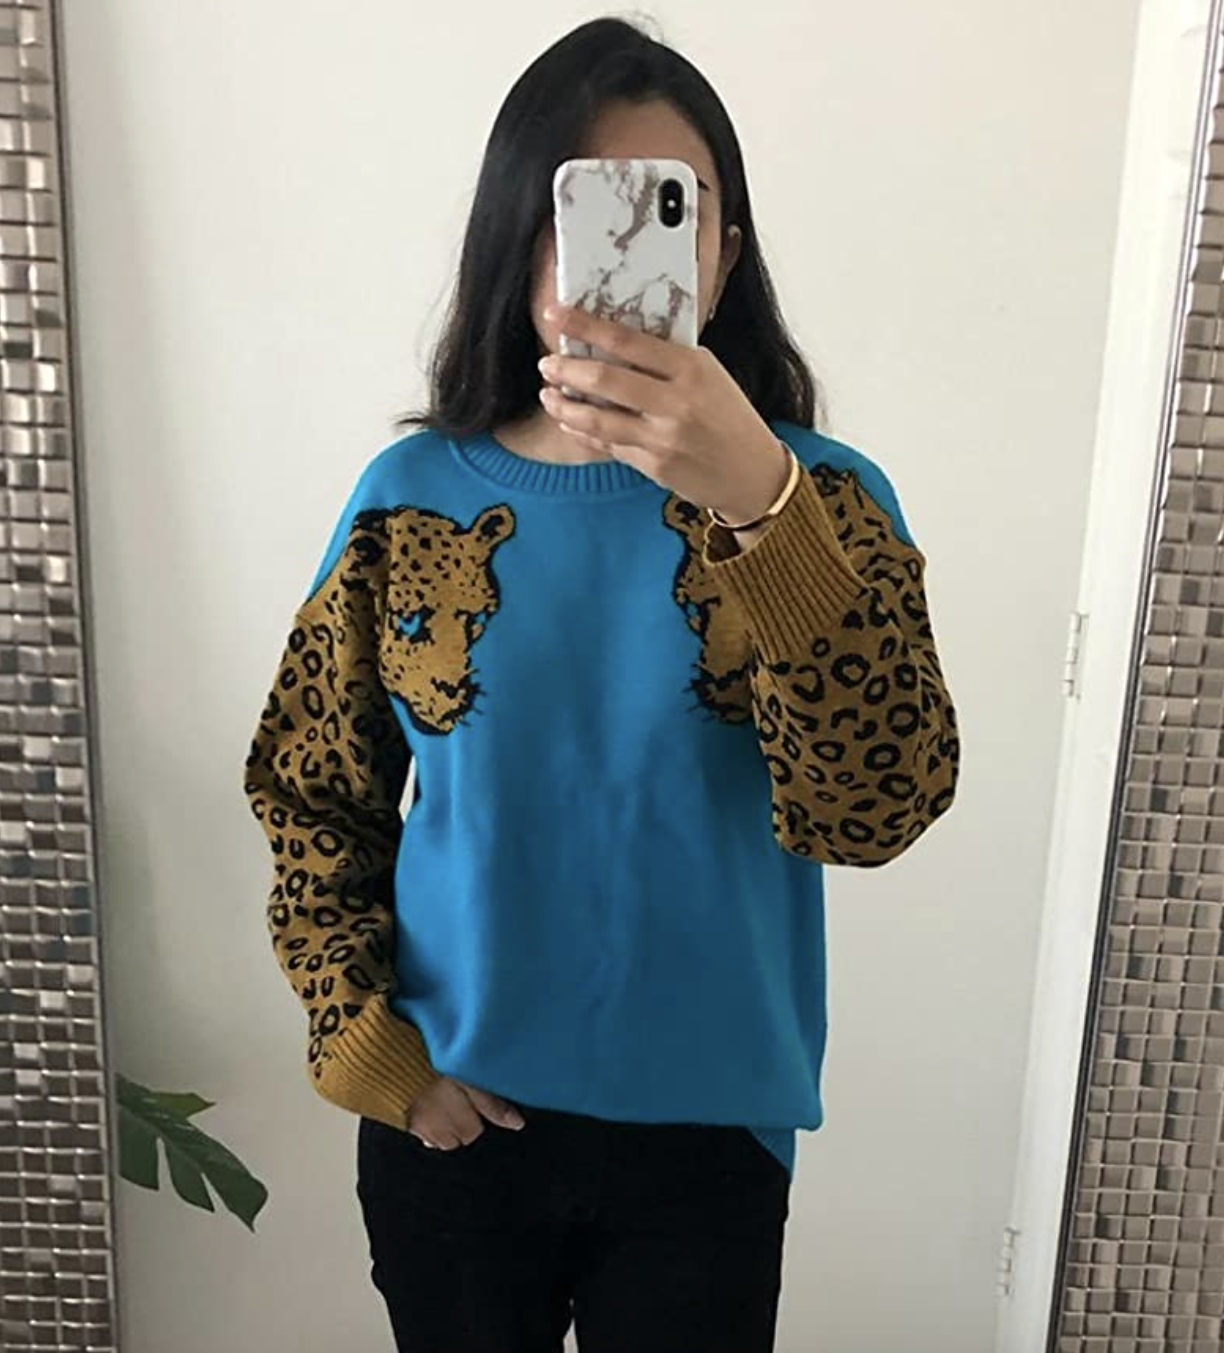 reviewer wearing the blue sweater with leopard illustration on sleeves